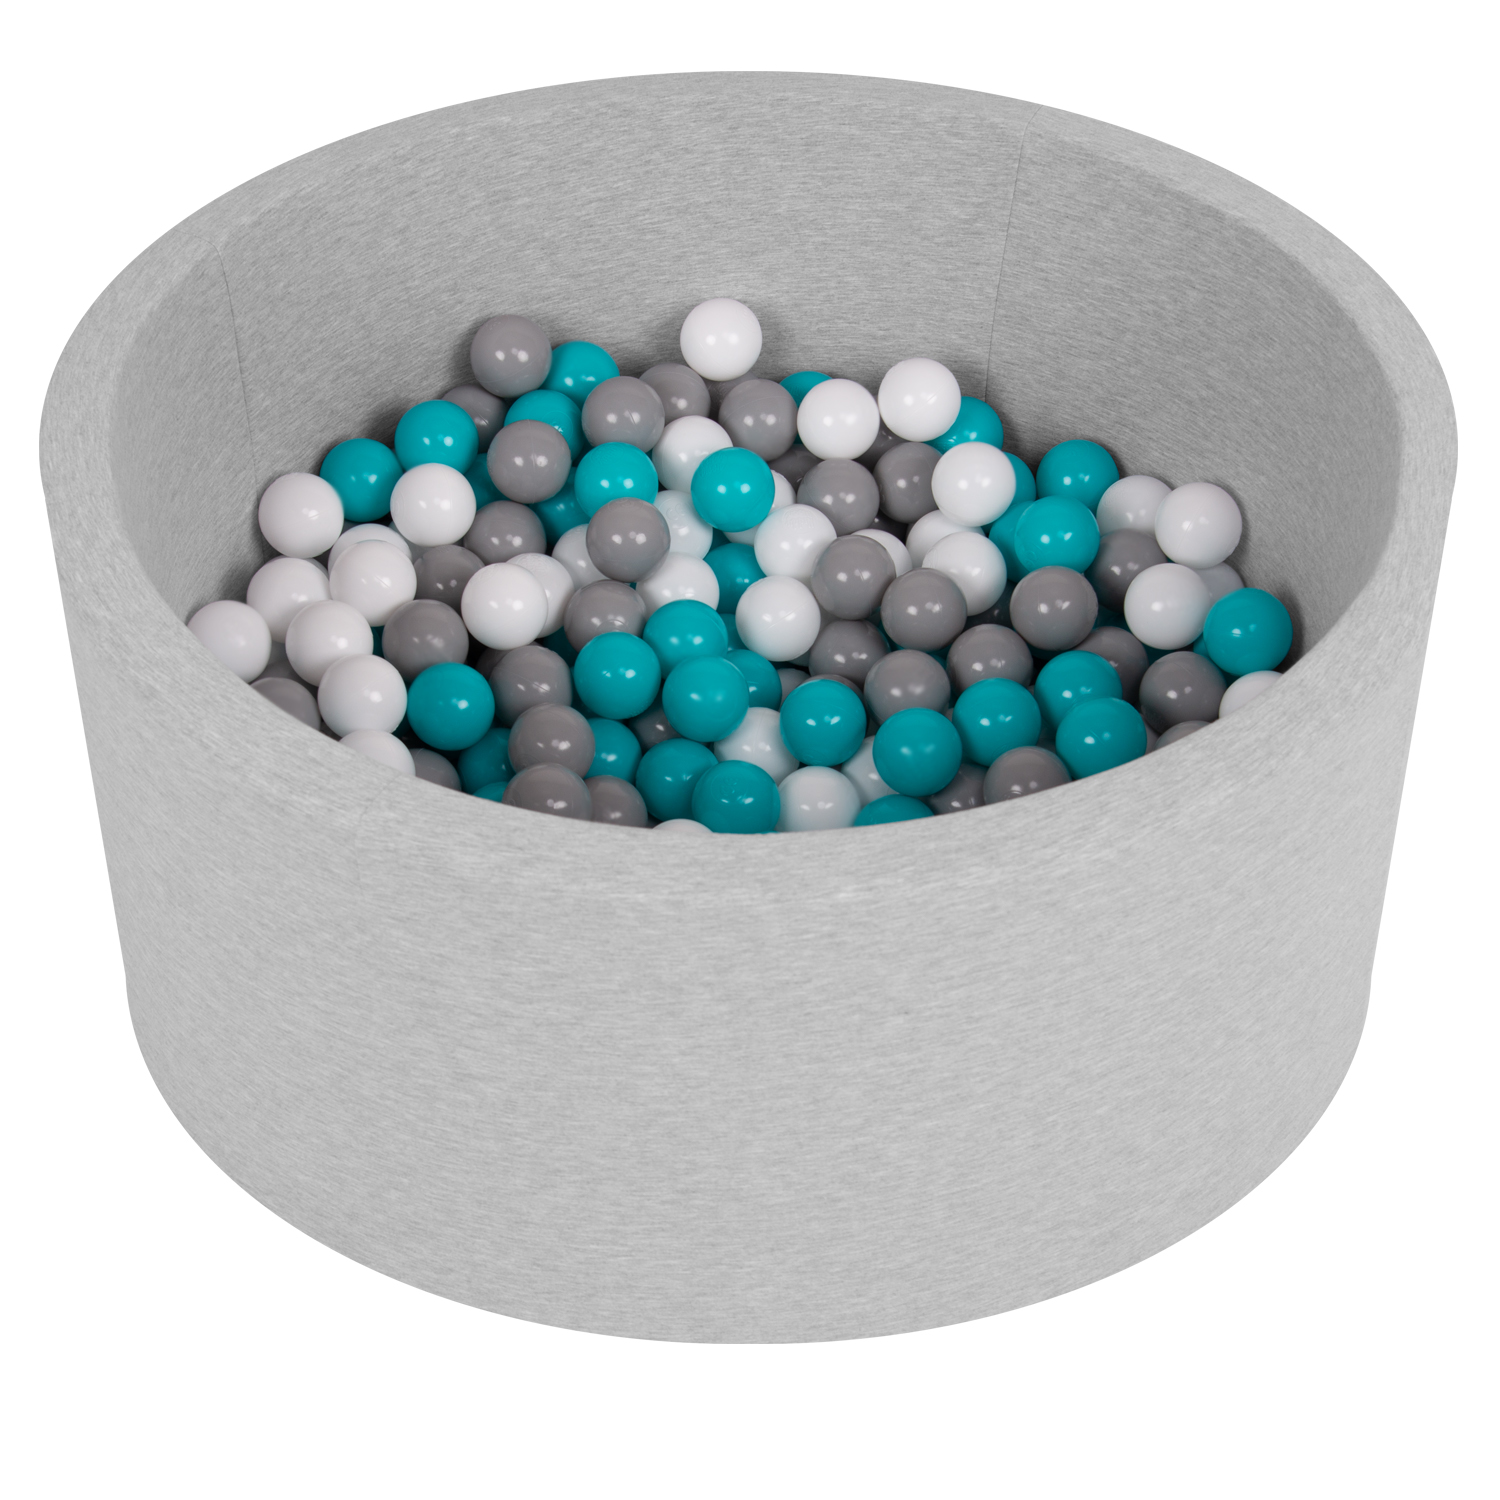 Selonis-Soft-Ball-Pit-Pool-Round-90x30cm-for-Baby-Toddler-200-Balls-Foam miniatuur 7